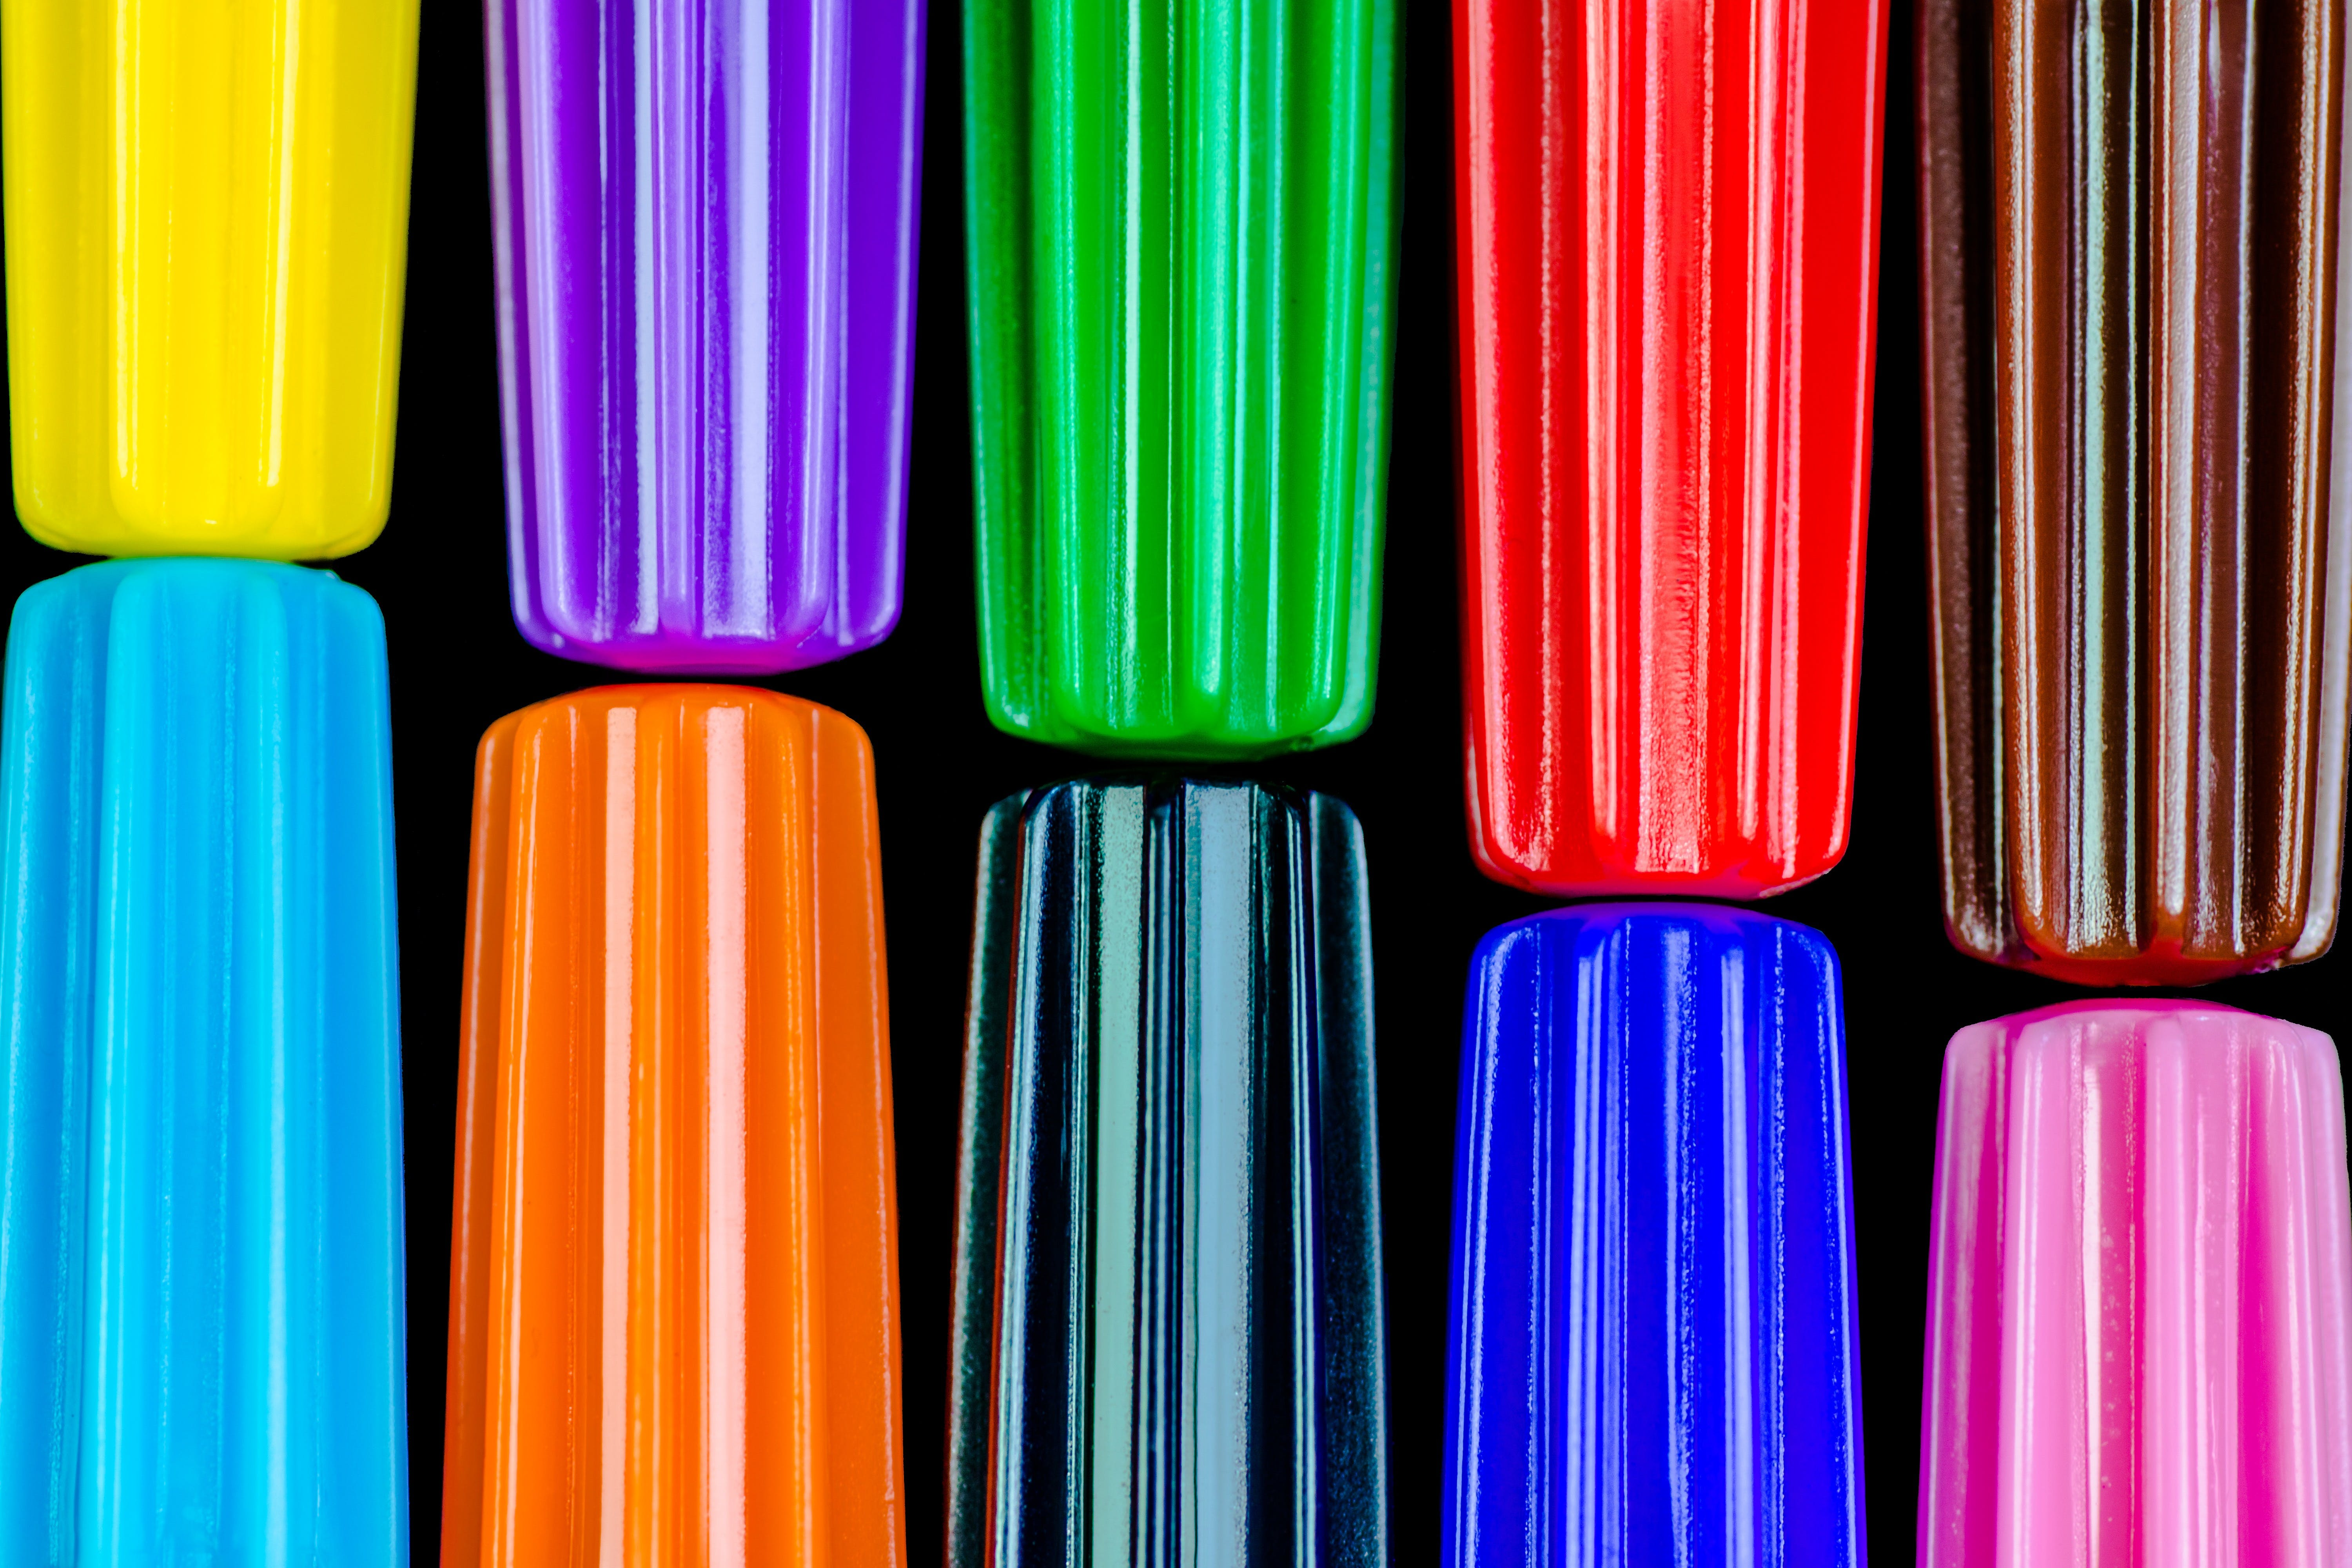 Free stock photo of pen, pens, school, colorful